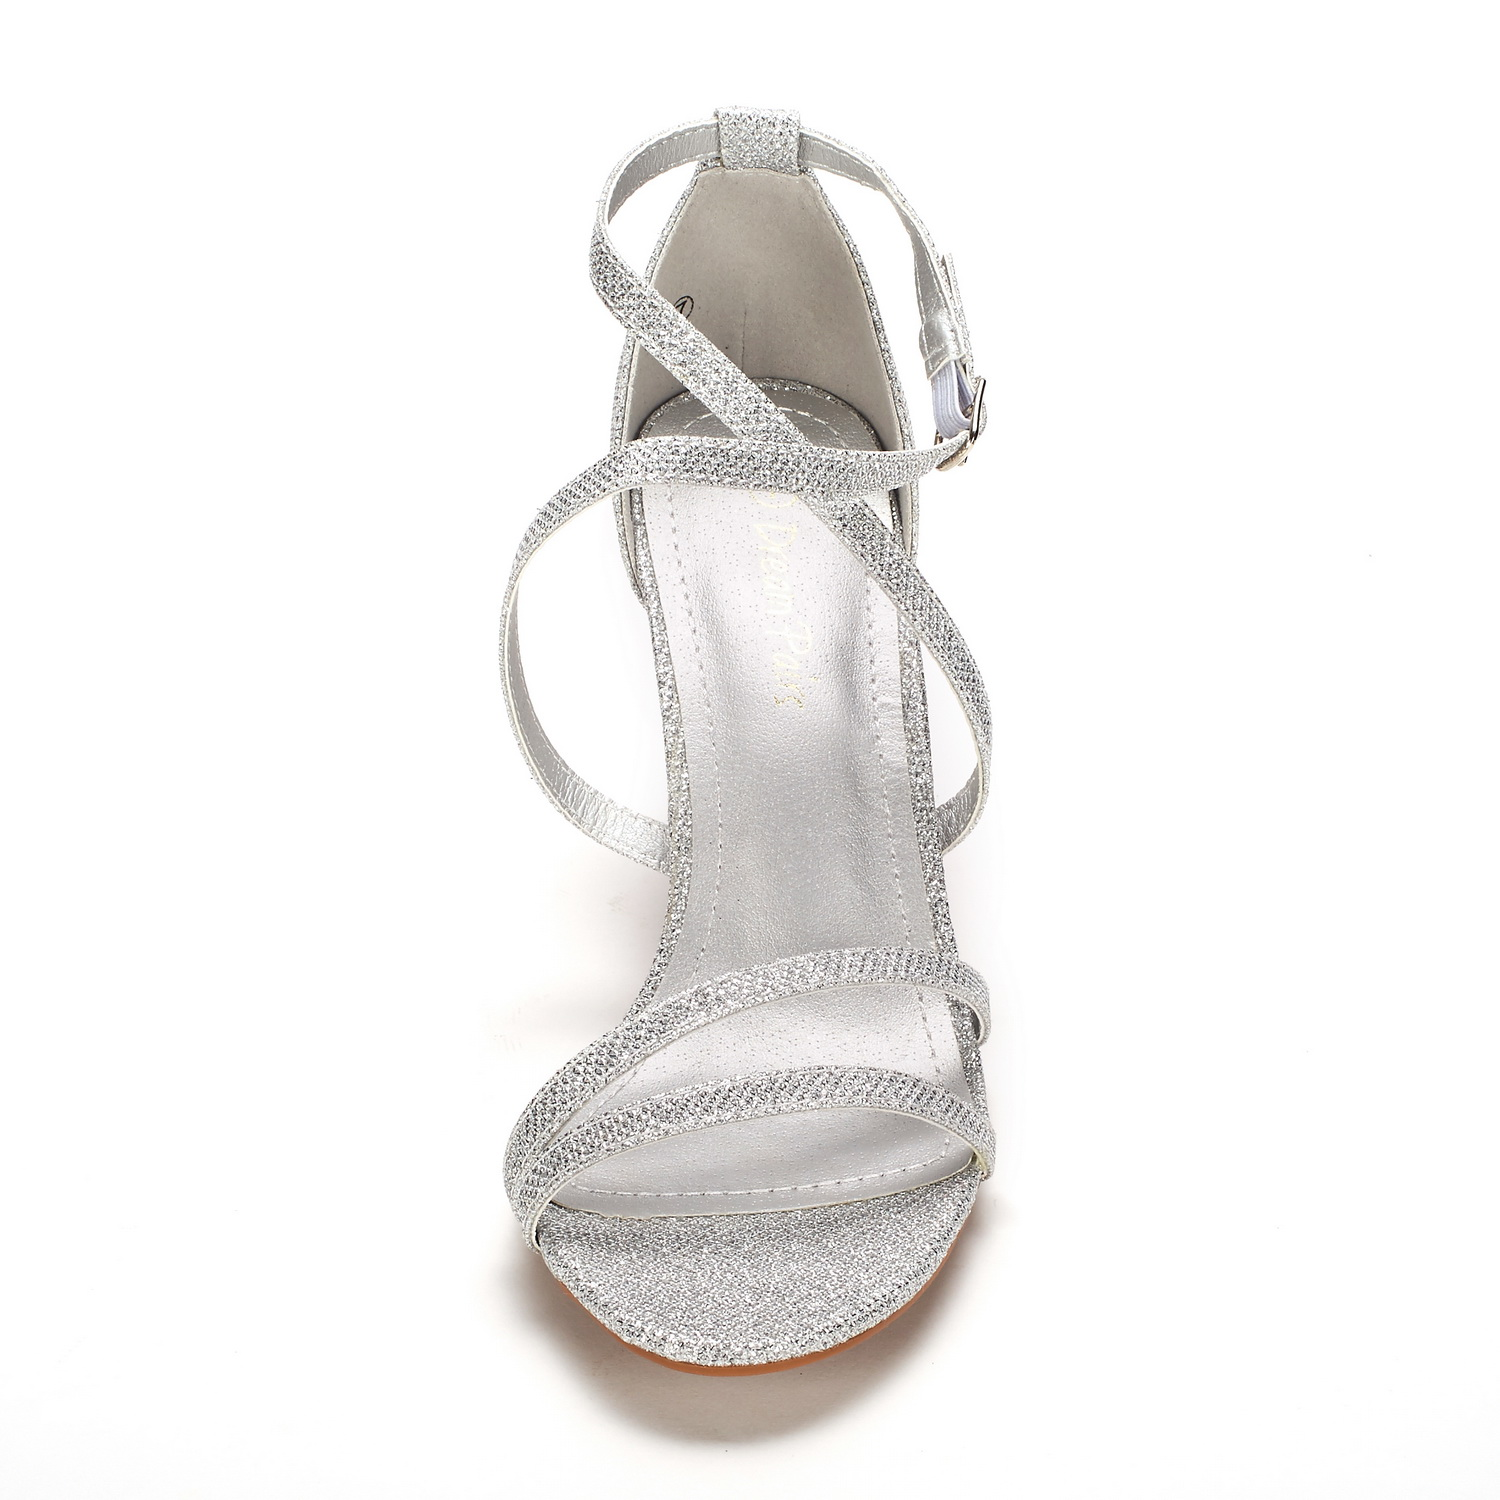 DREAM-PAIRS-Women-039-s-Ankle-Strap-High-Heel-Sandals-Dress-Shoes-Wedding-Party thumbnail 23